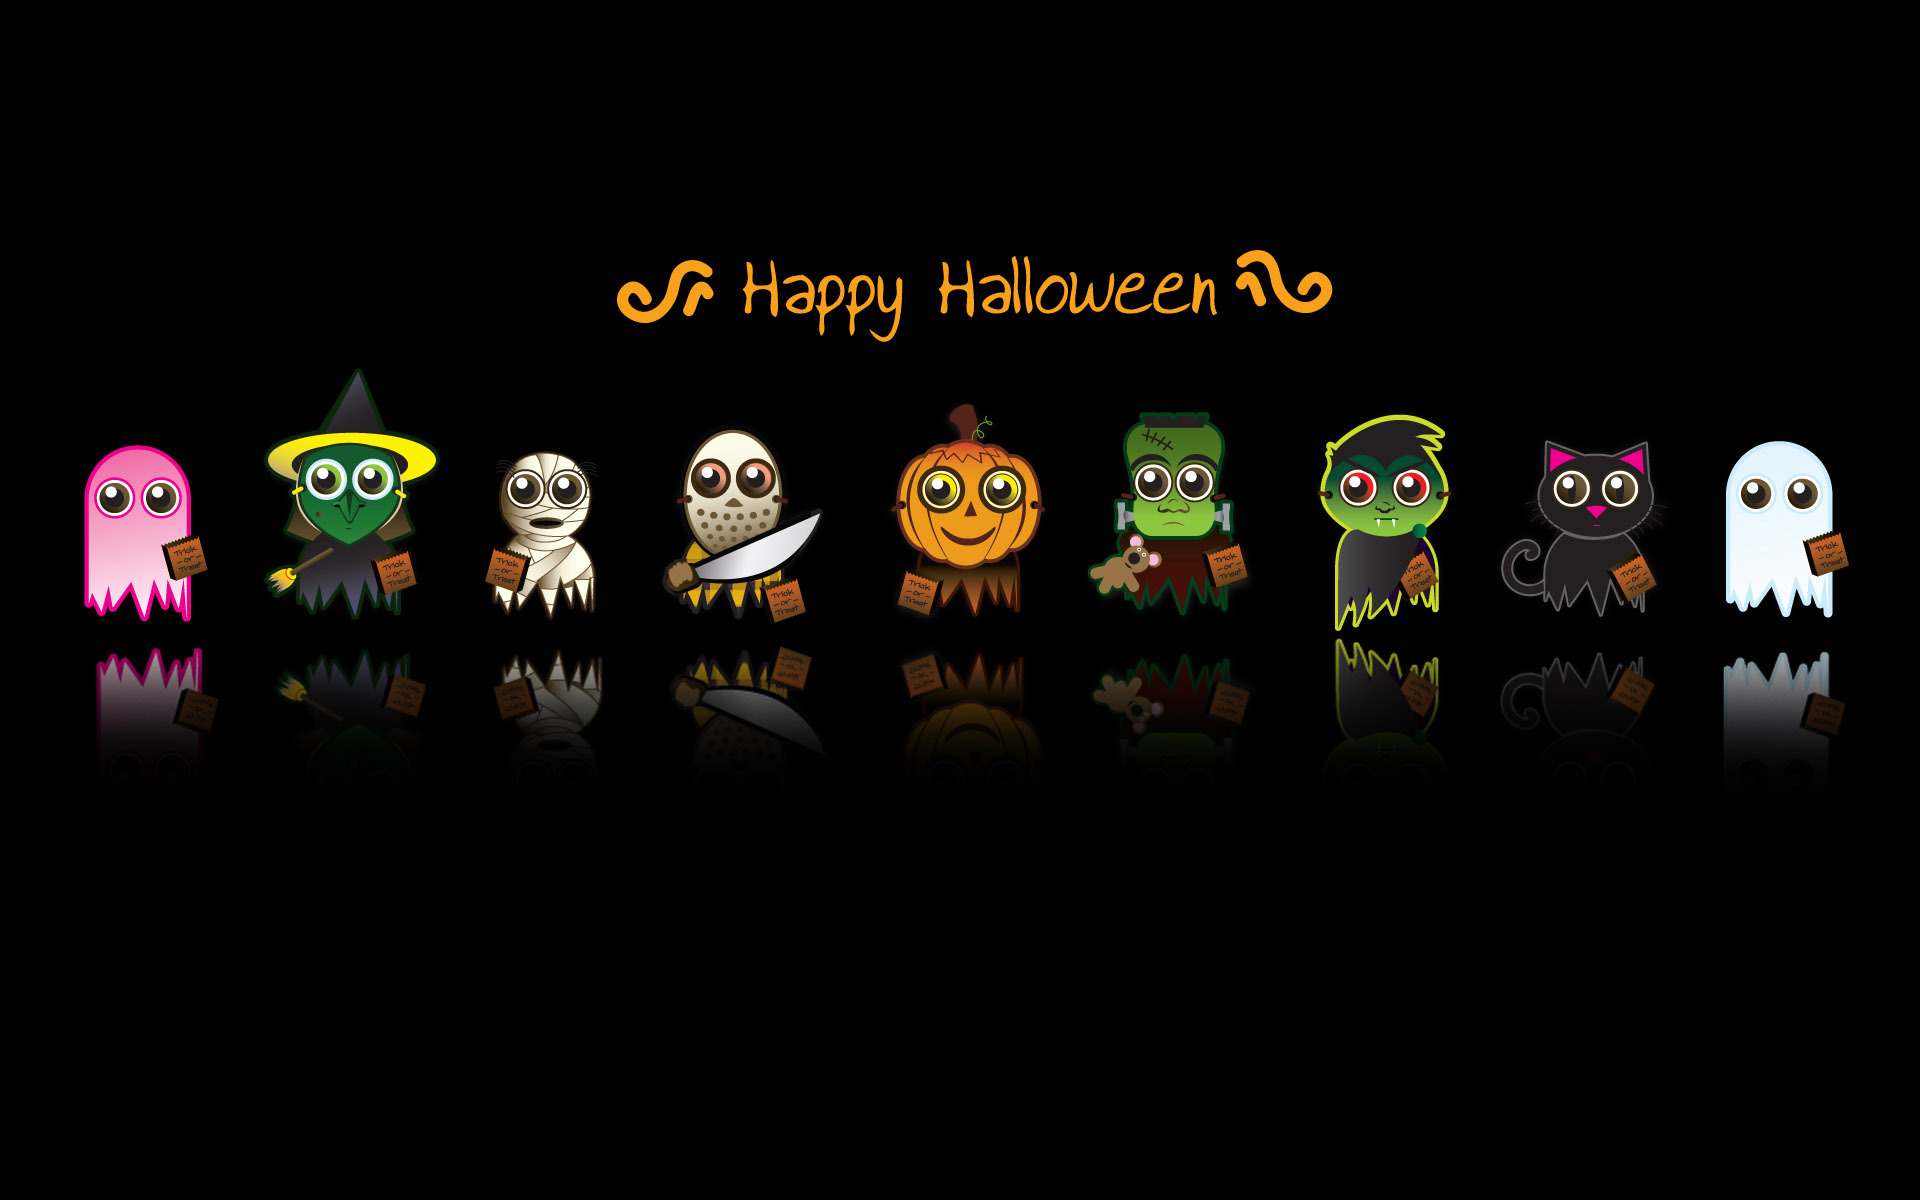 Iphone wallpaper halloween tumblr - Halloween Birthday Wallpaper Bootsforcheaper Com